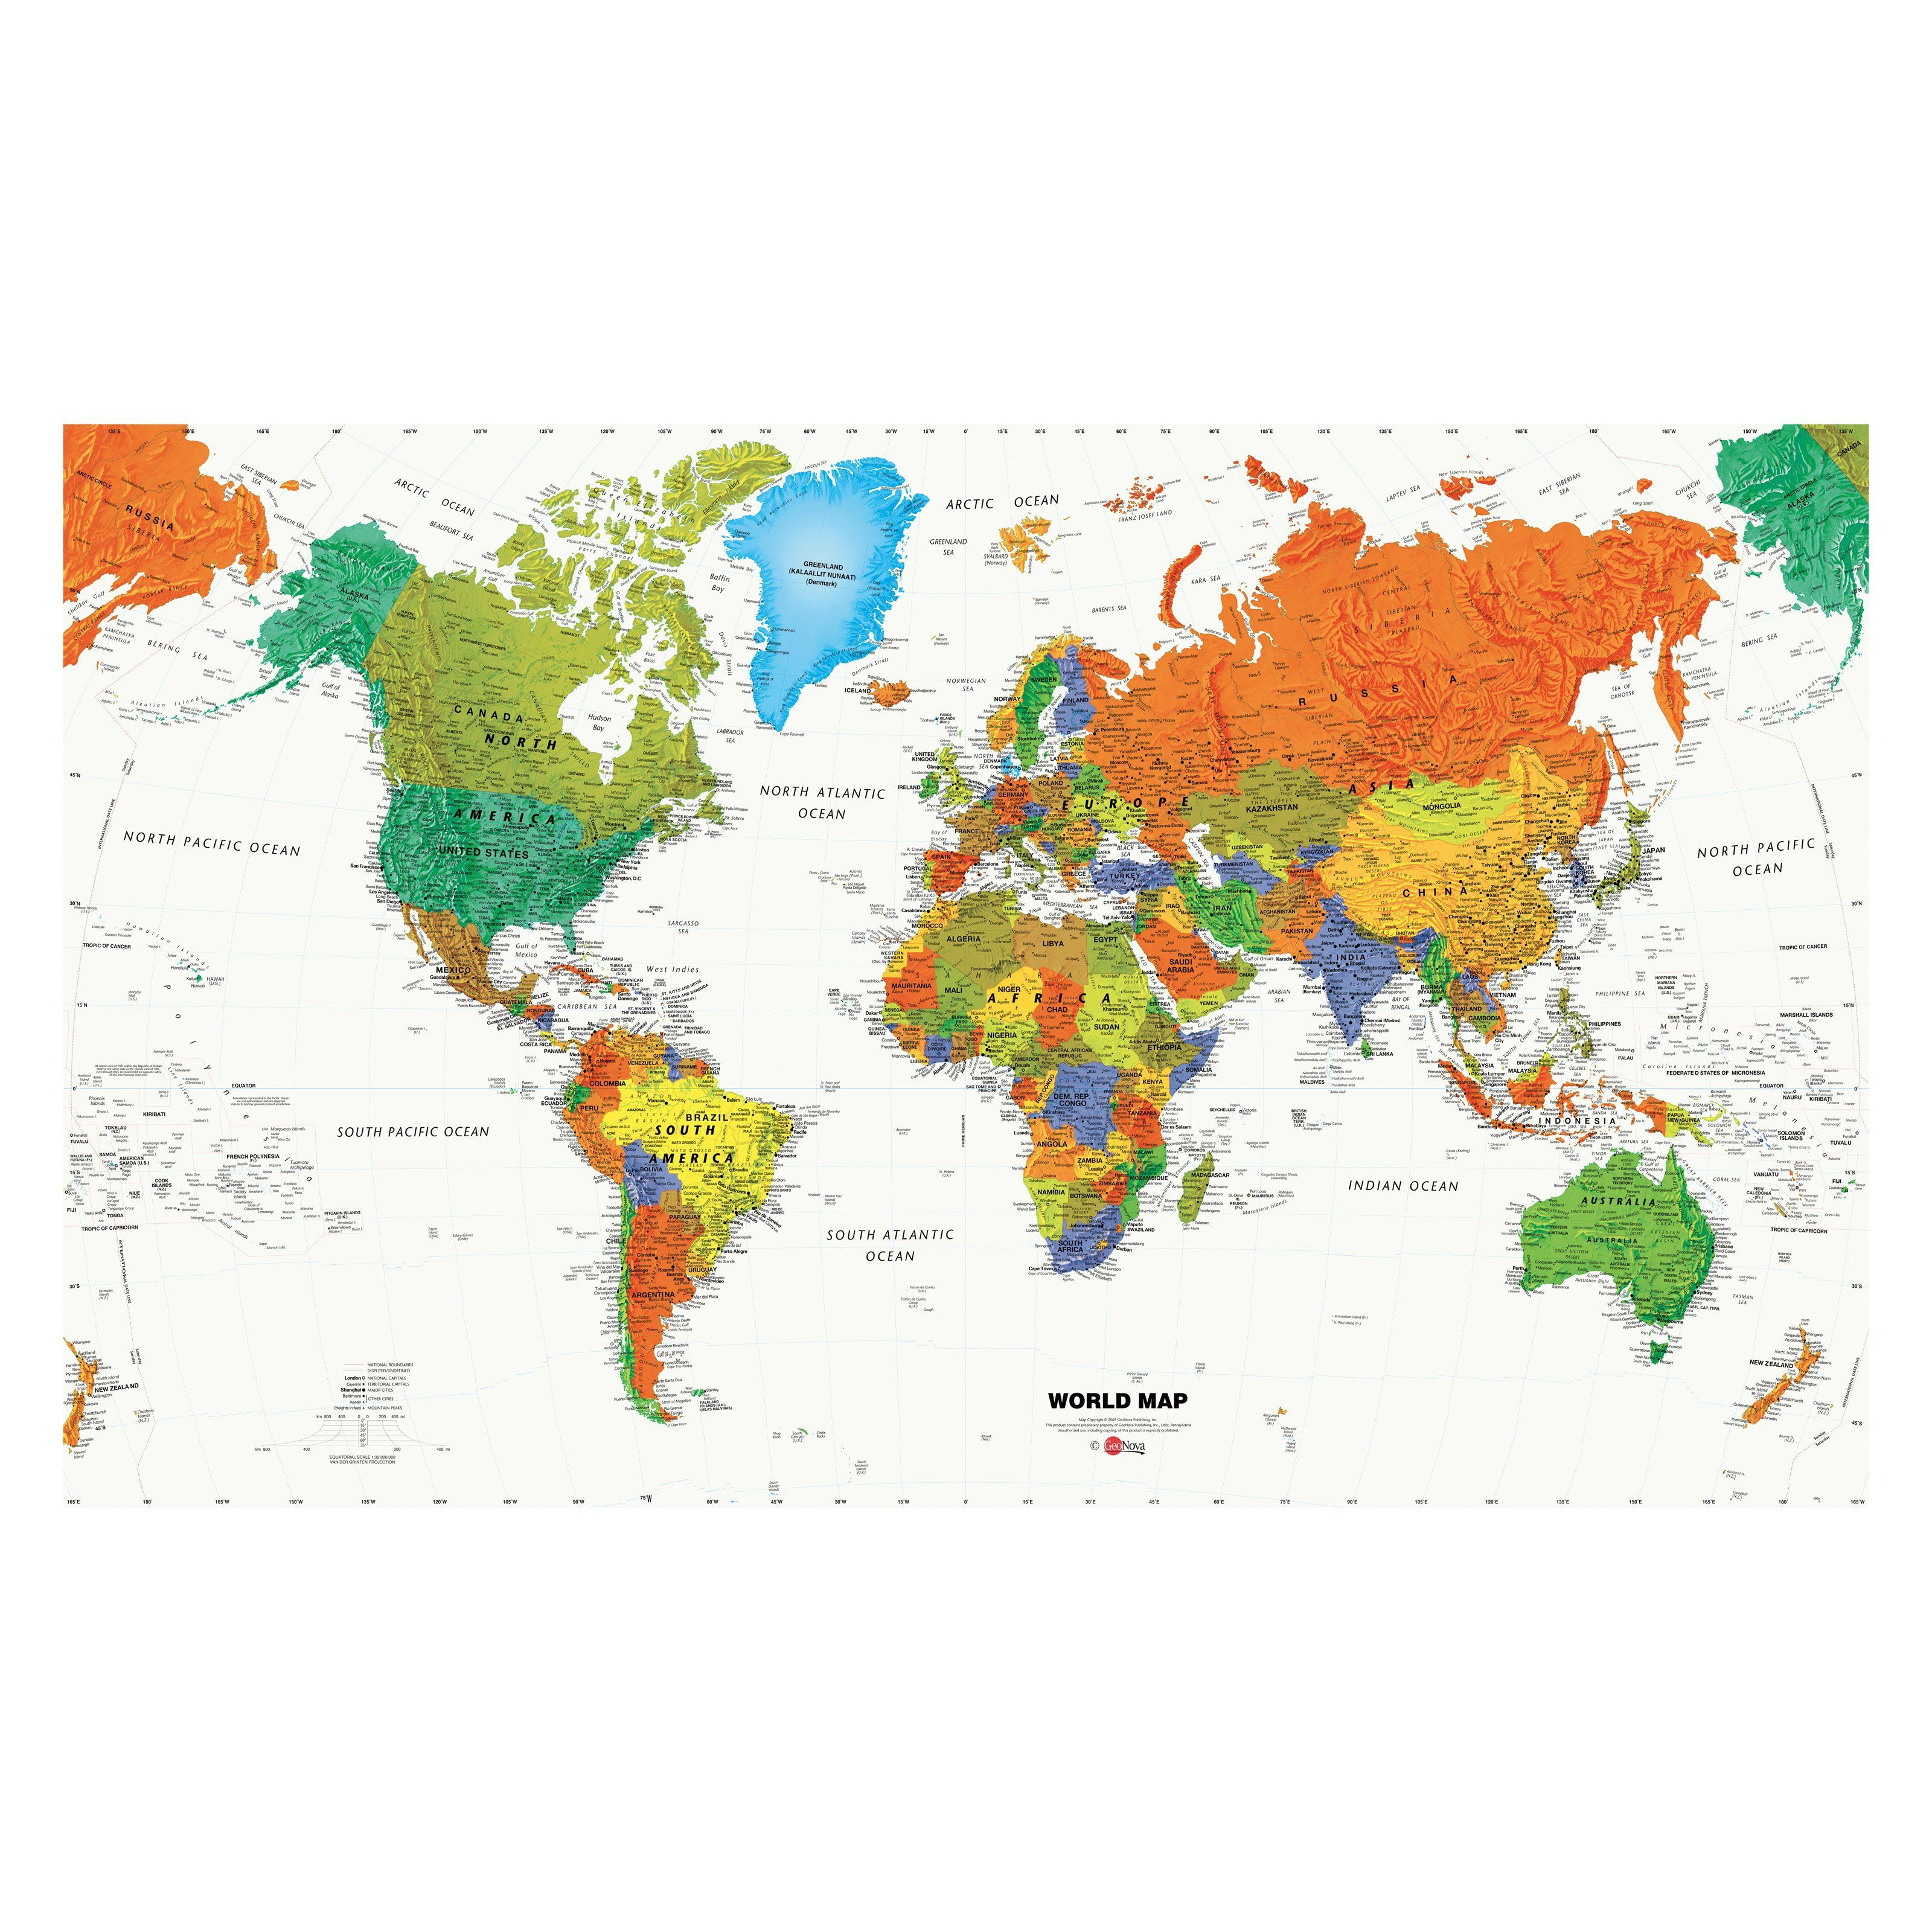 World map wallpaper mural 105w x 6h ft 15499 james room world map wallpaper mural 105w x 6h ft 15499 gumiabroncs Image collections